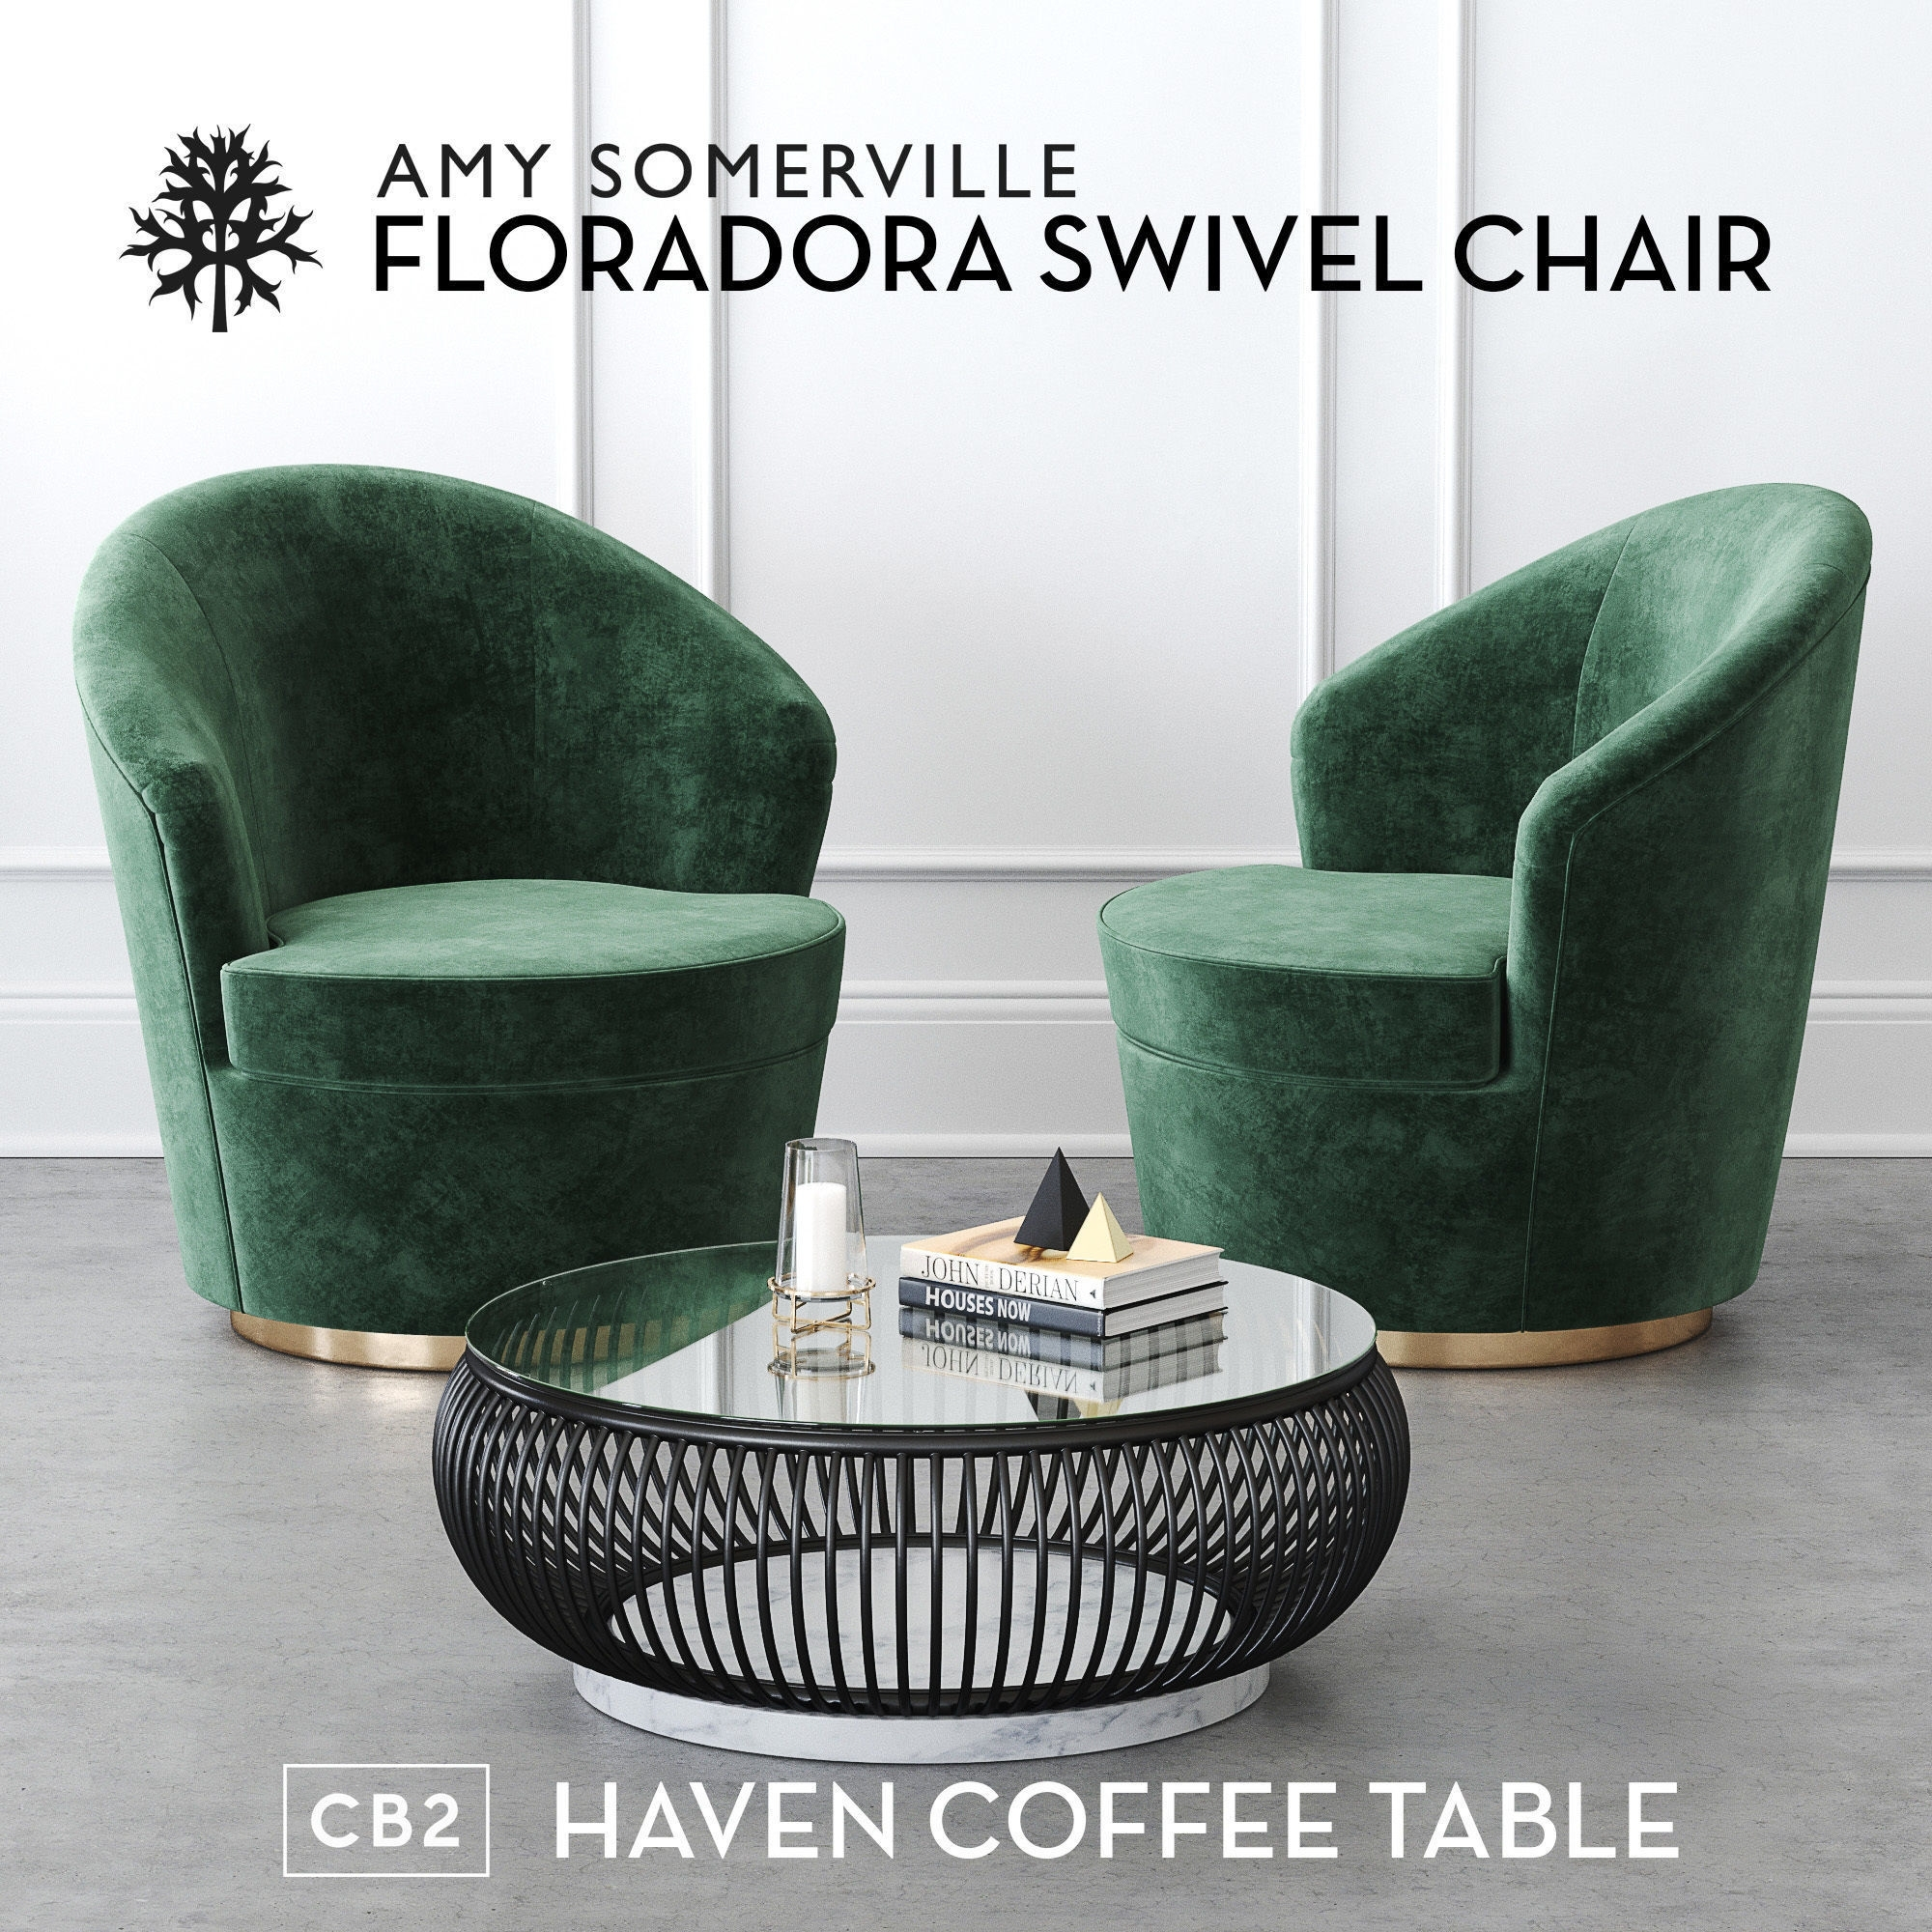 Floradora Swivel Chair With Cb2 Haven Coffee Table 3D pertaining to Haven Coffee Tables (Image 10 of 30)